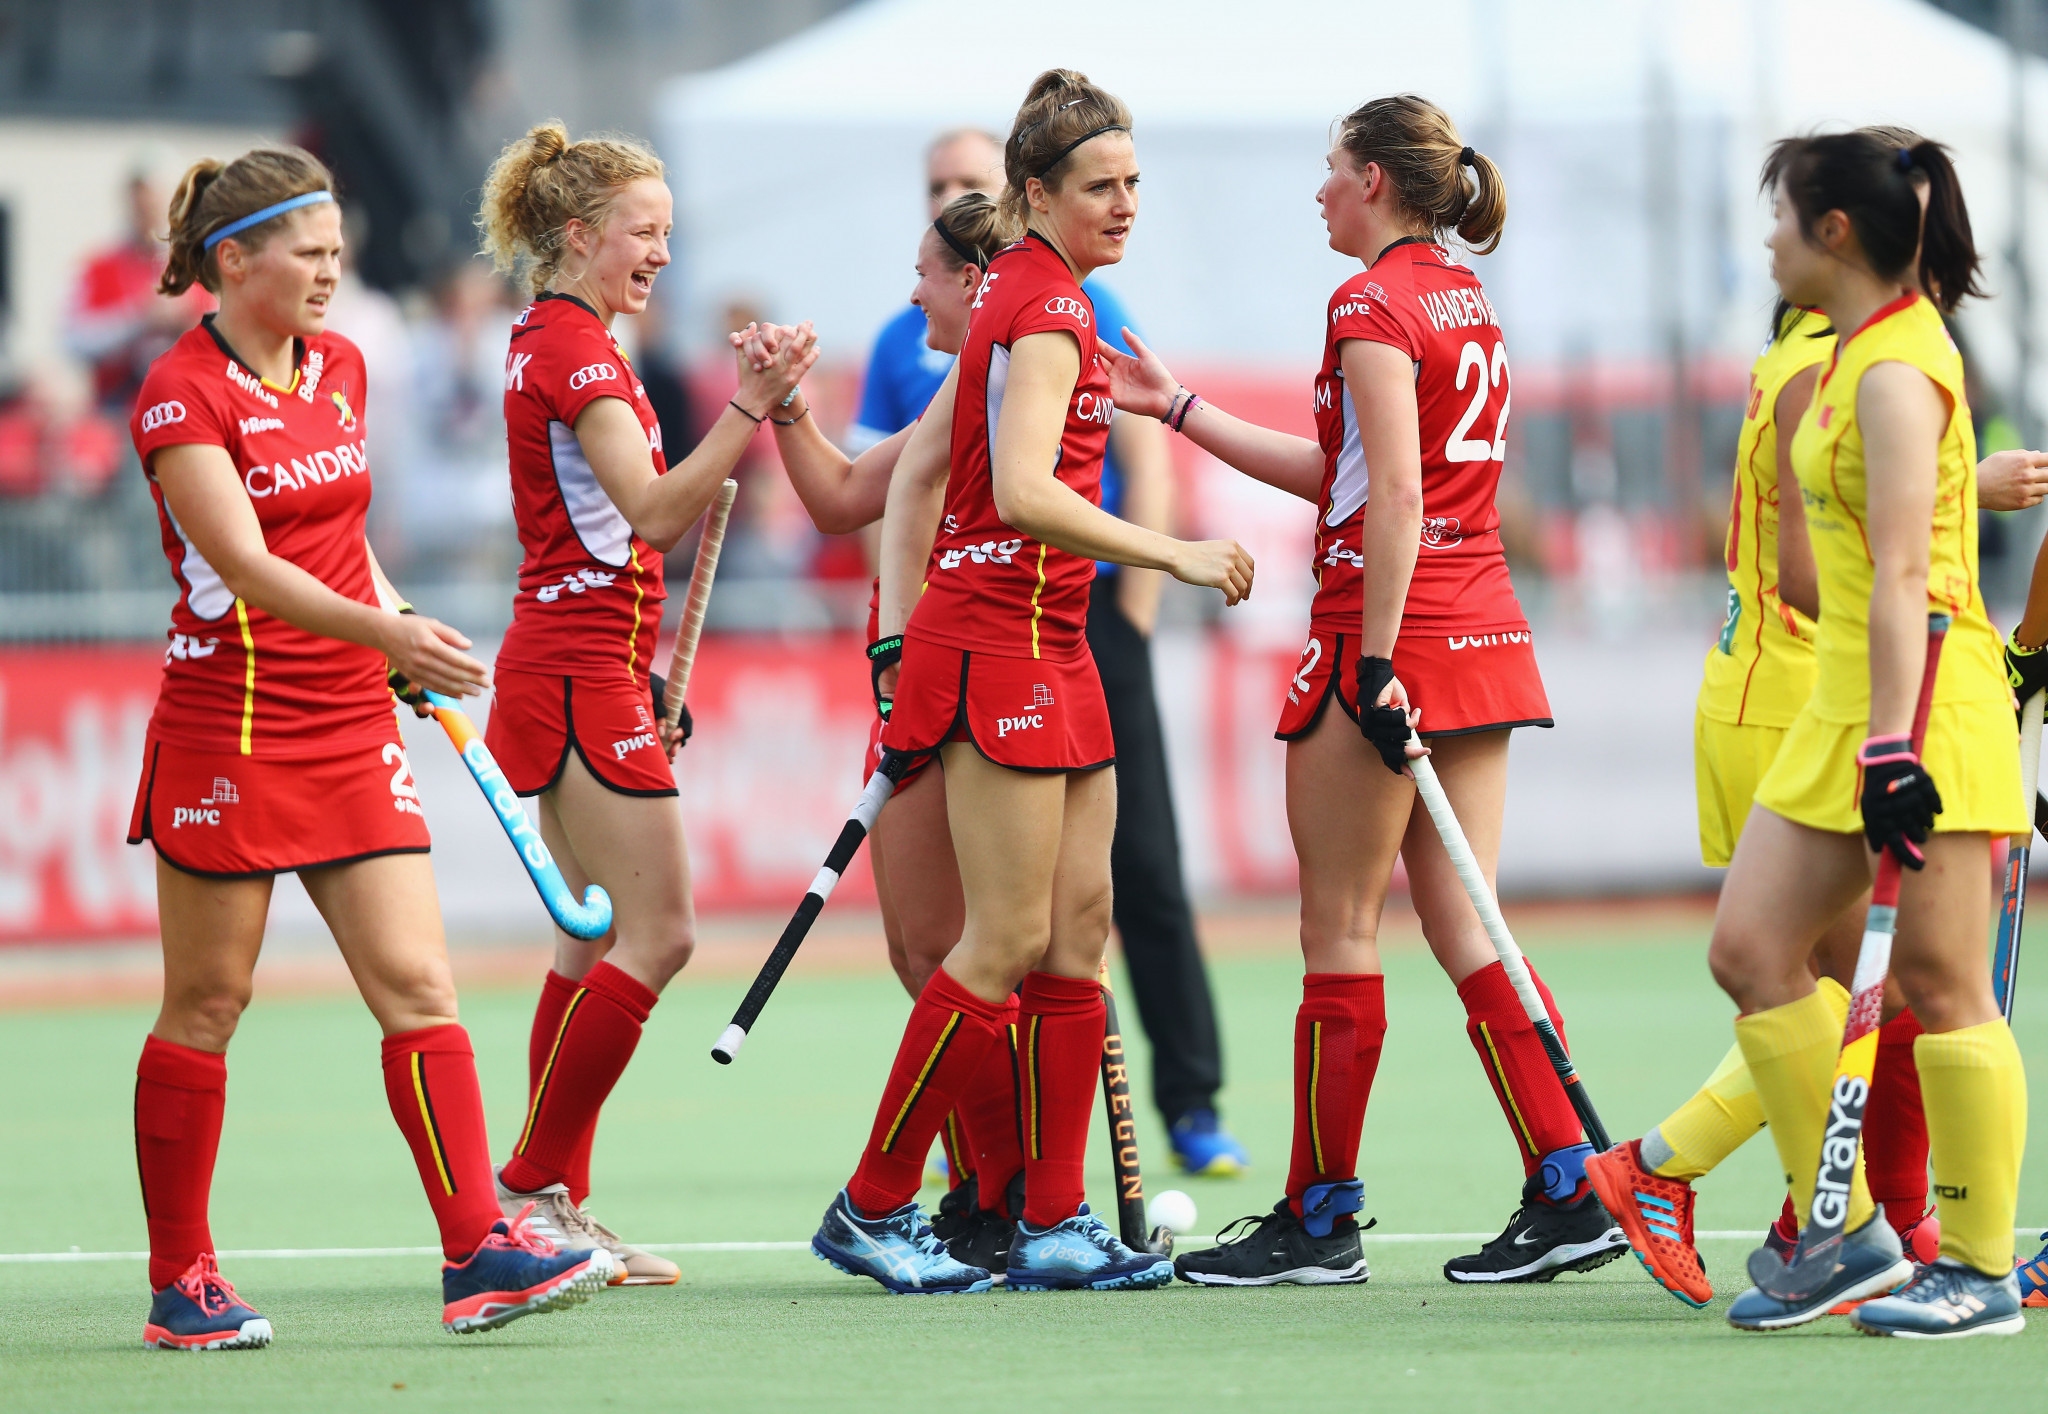 Belgium, ranked 13th in the world, beat China today 4-1 in the FIH Pro League ©Getty Images